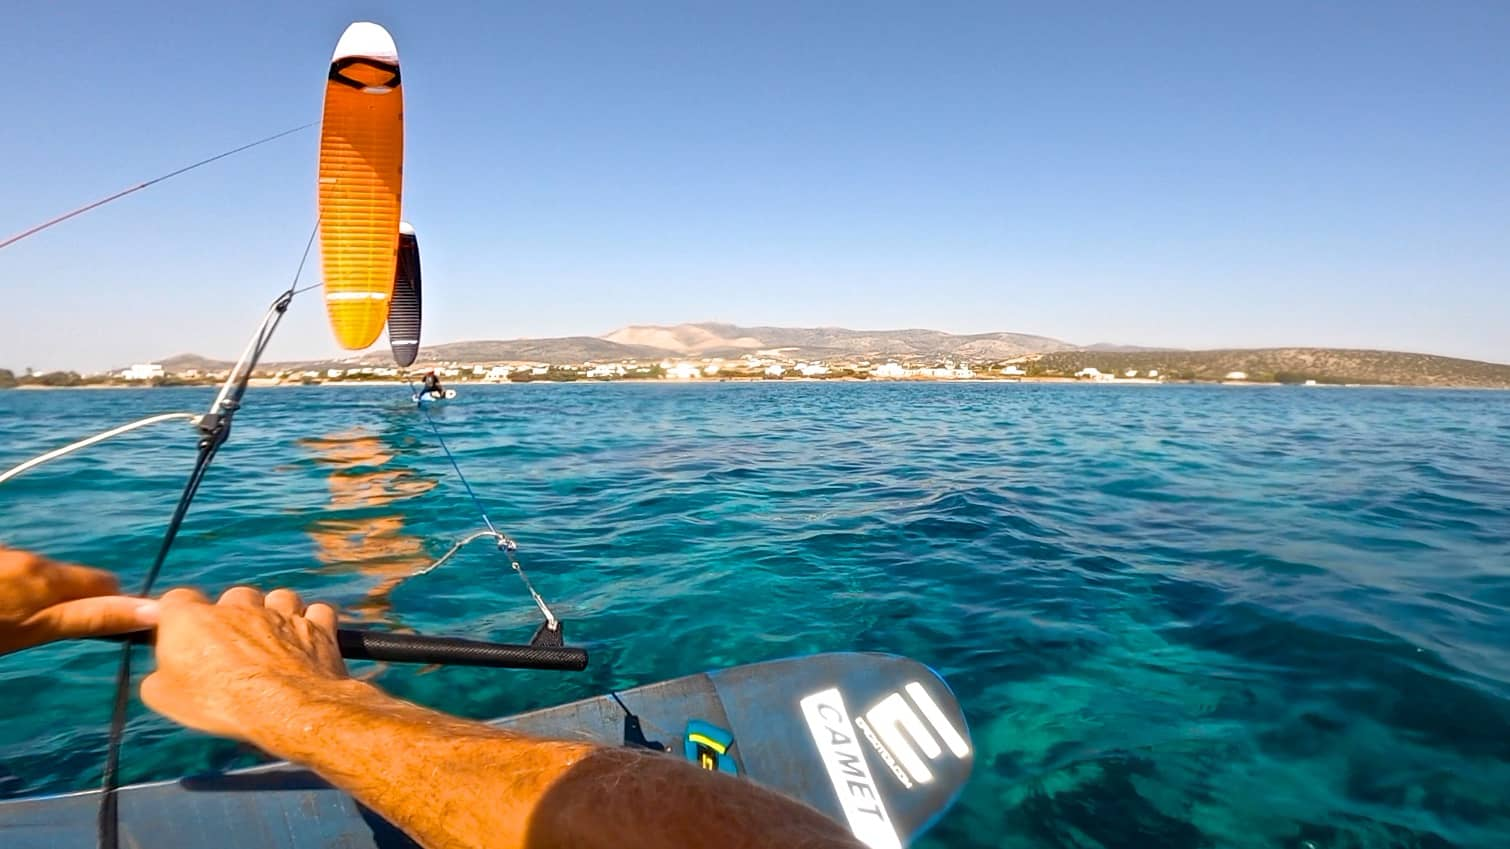 Time for KiteFoil Racing - with Epic Kites Kiteboarding